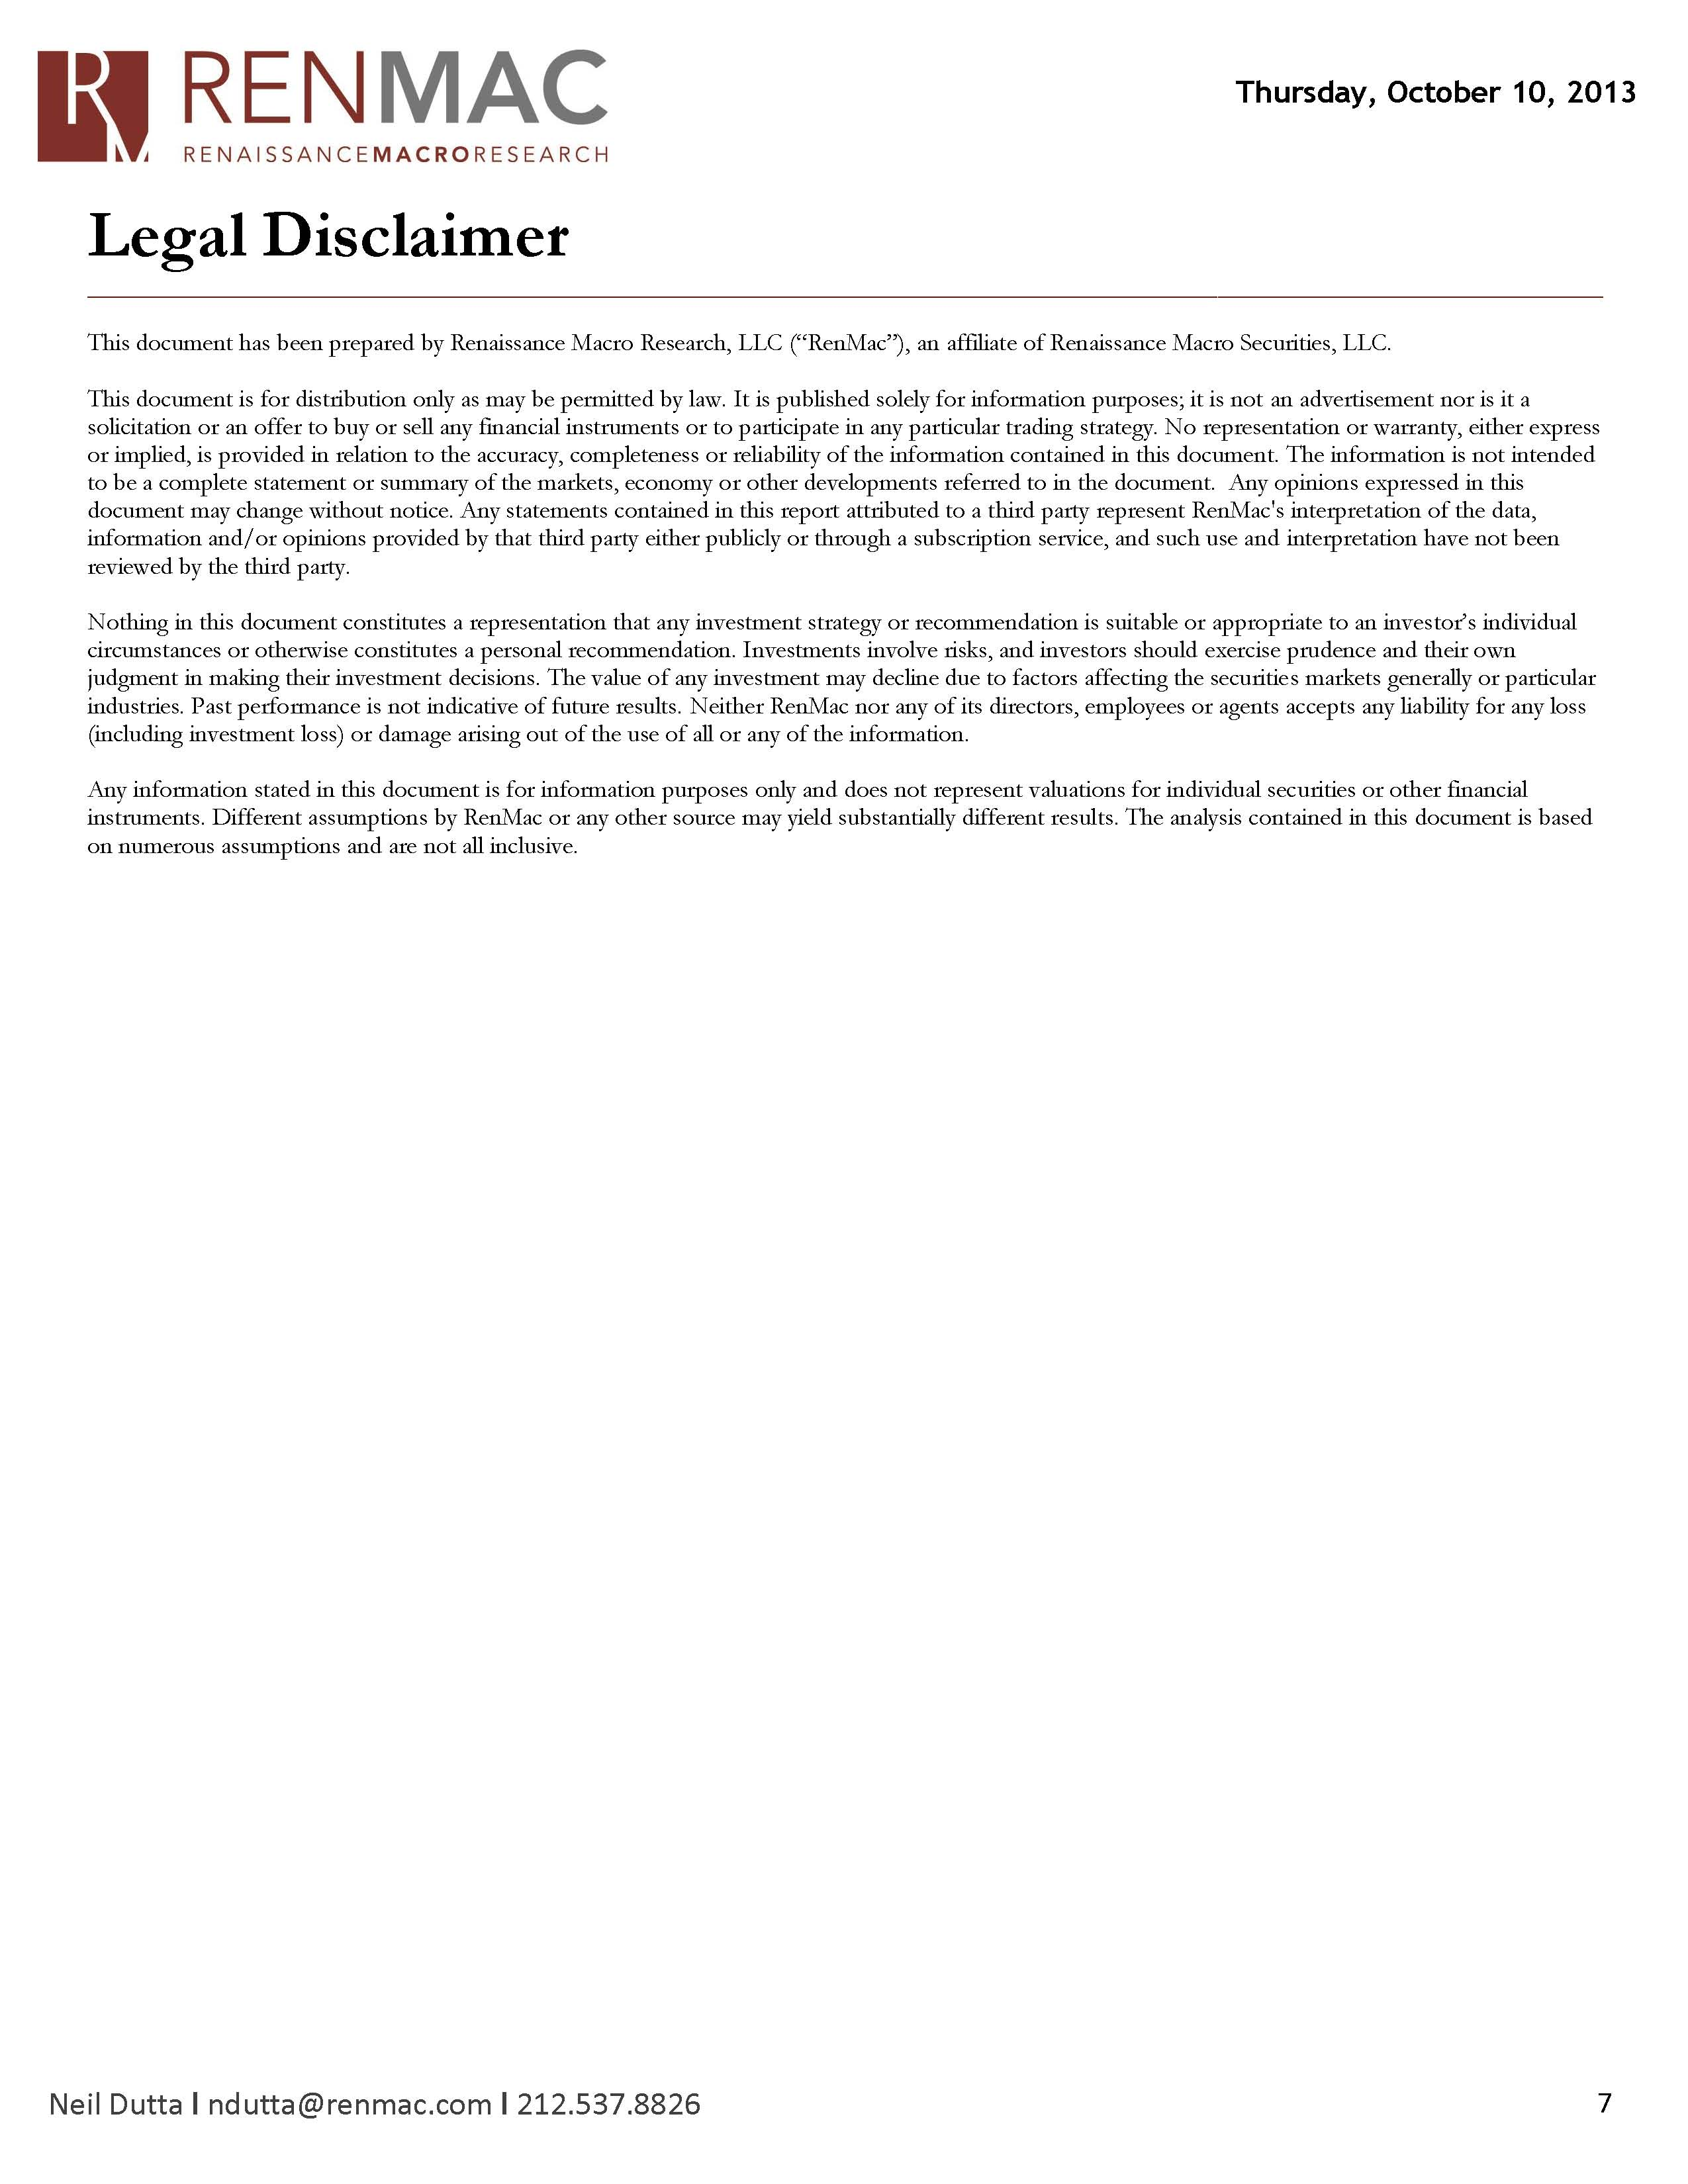 101013_EcomWeekly(with media links)_Page_7